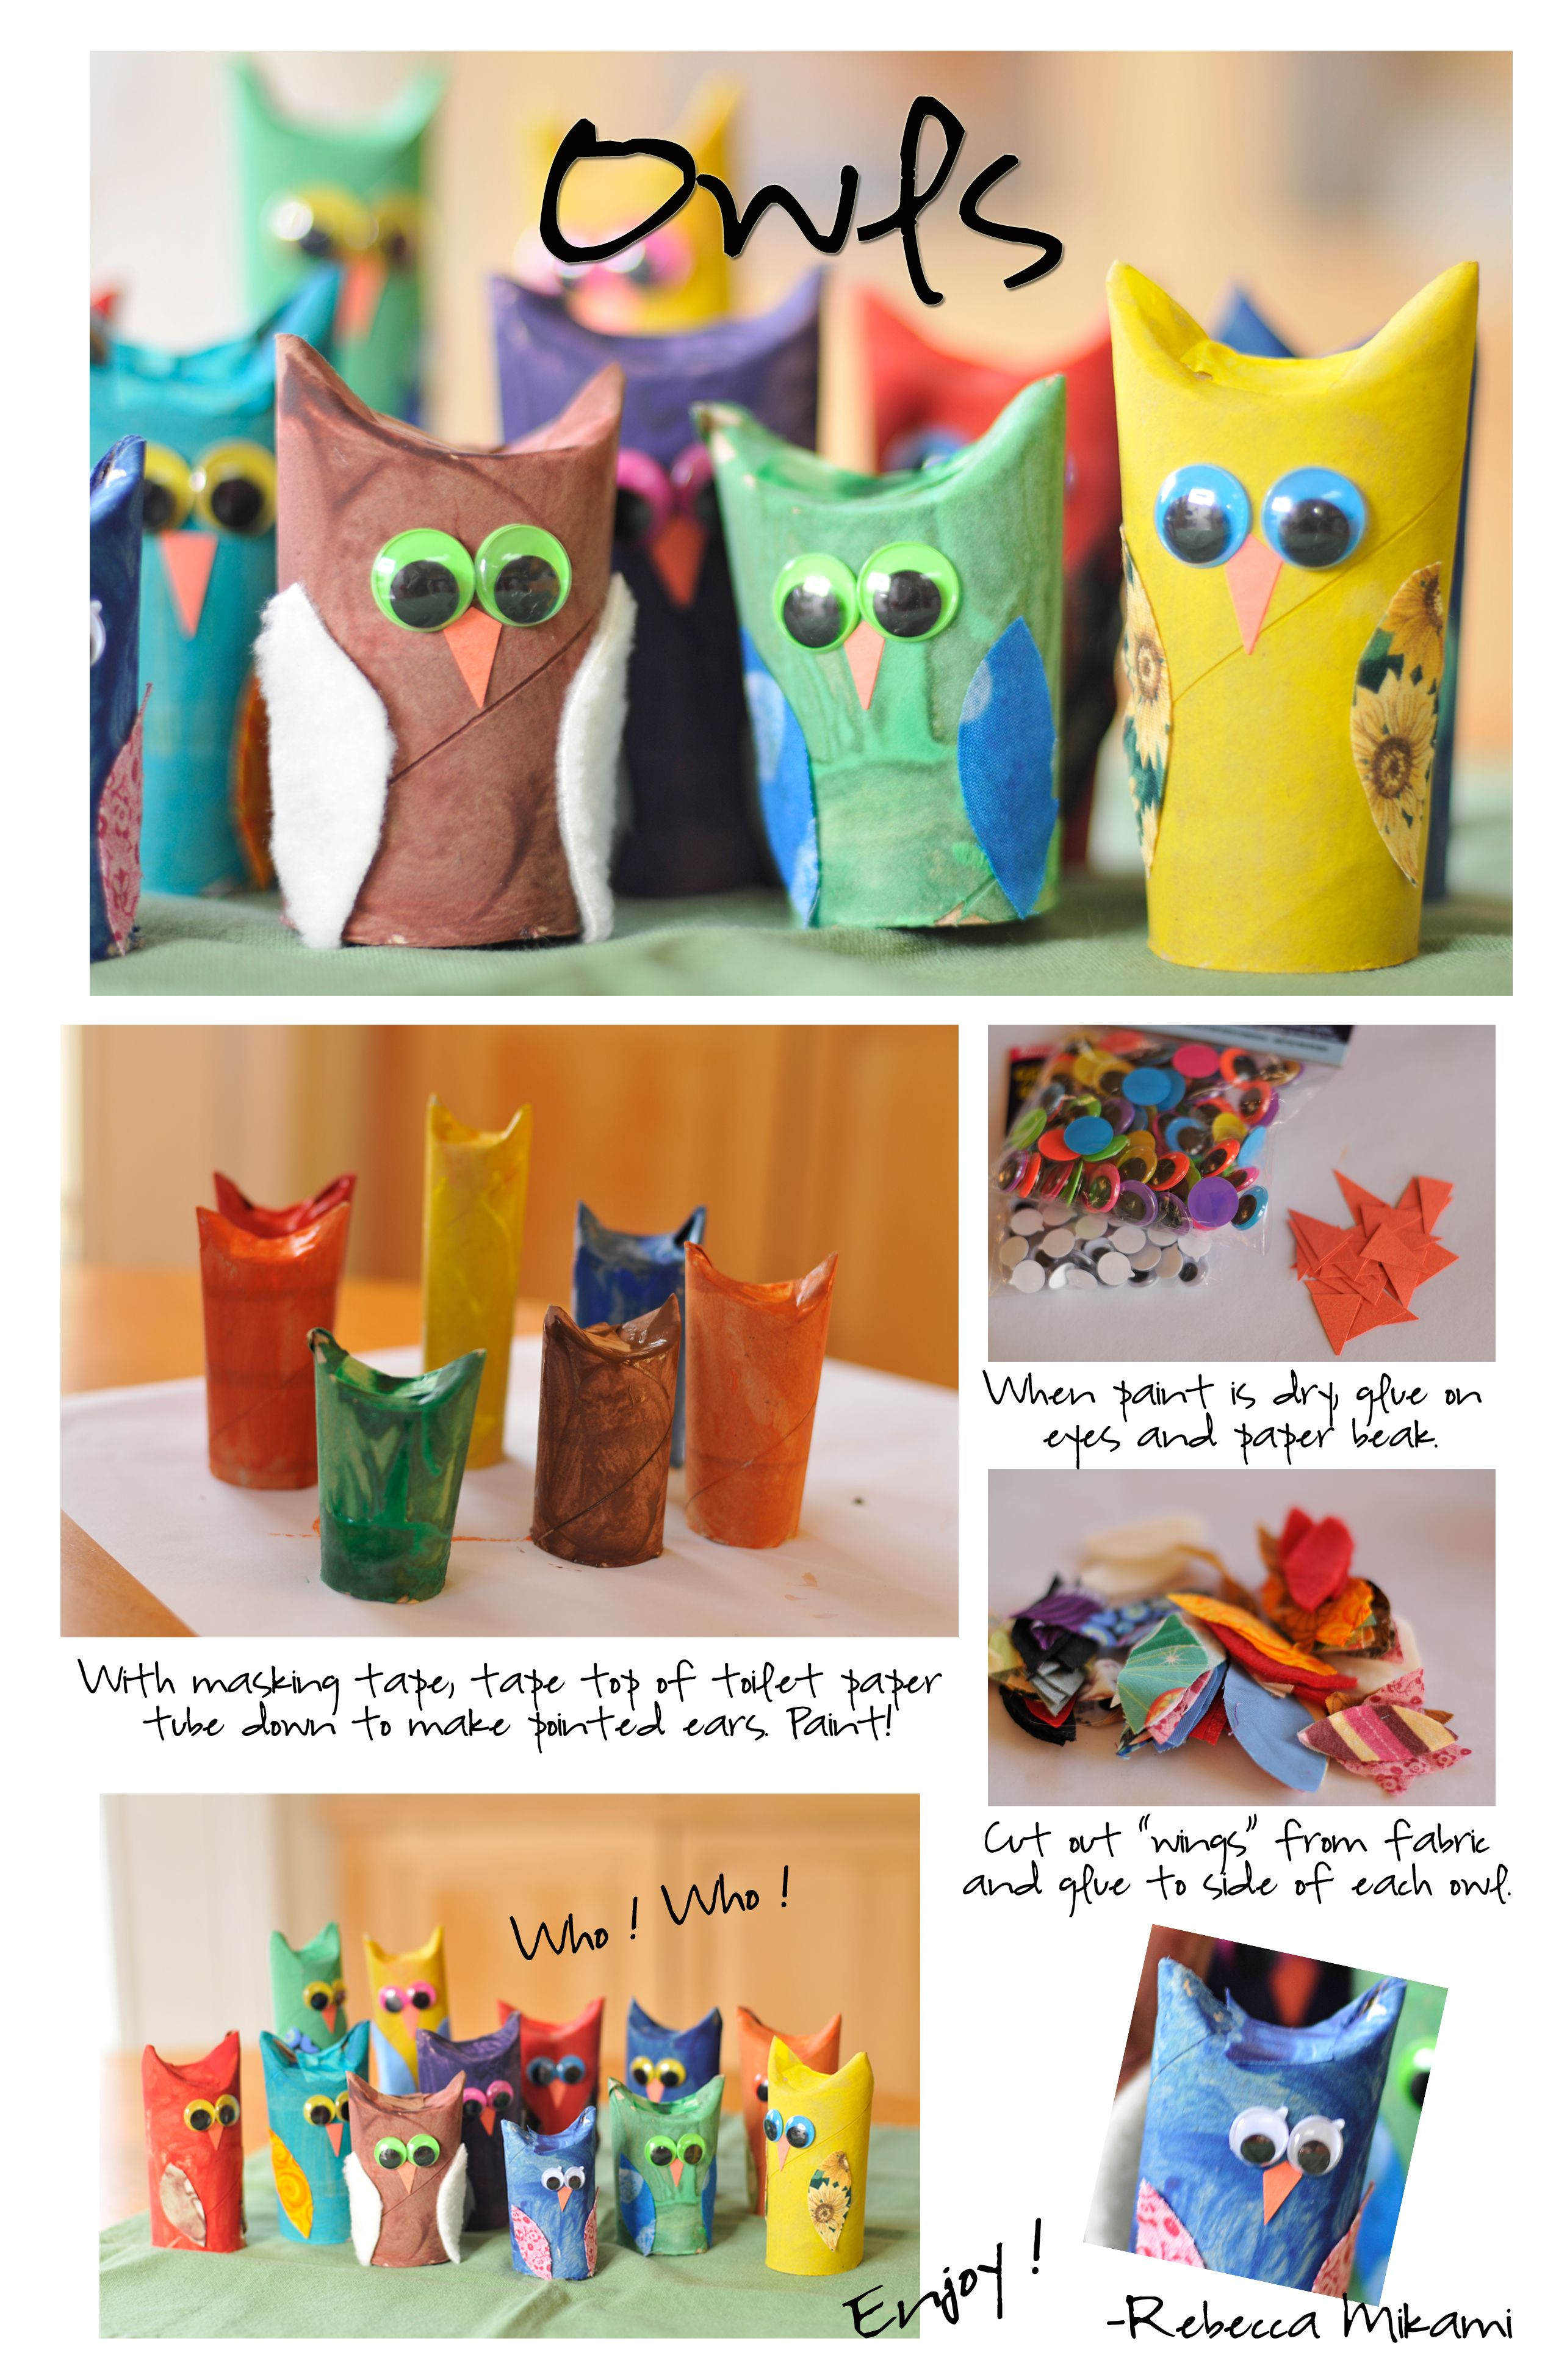 What You Can Do With Toilet Paper Tubes Crafty Kids Crafts For Kids Crafts